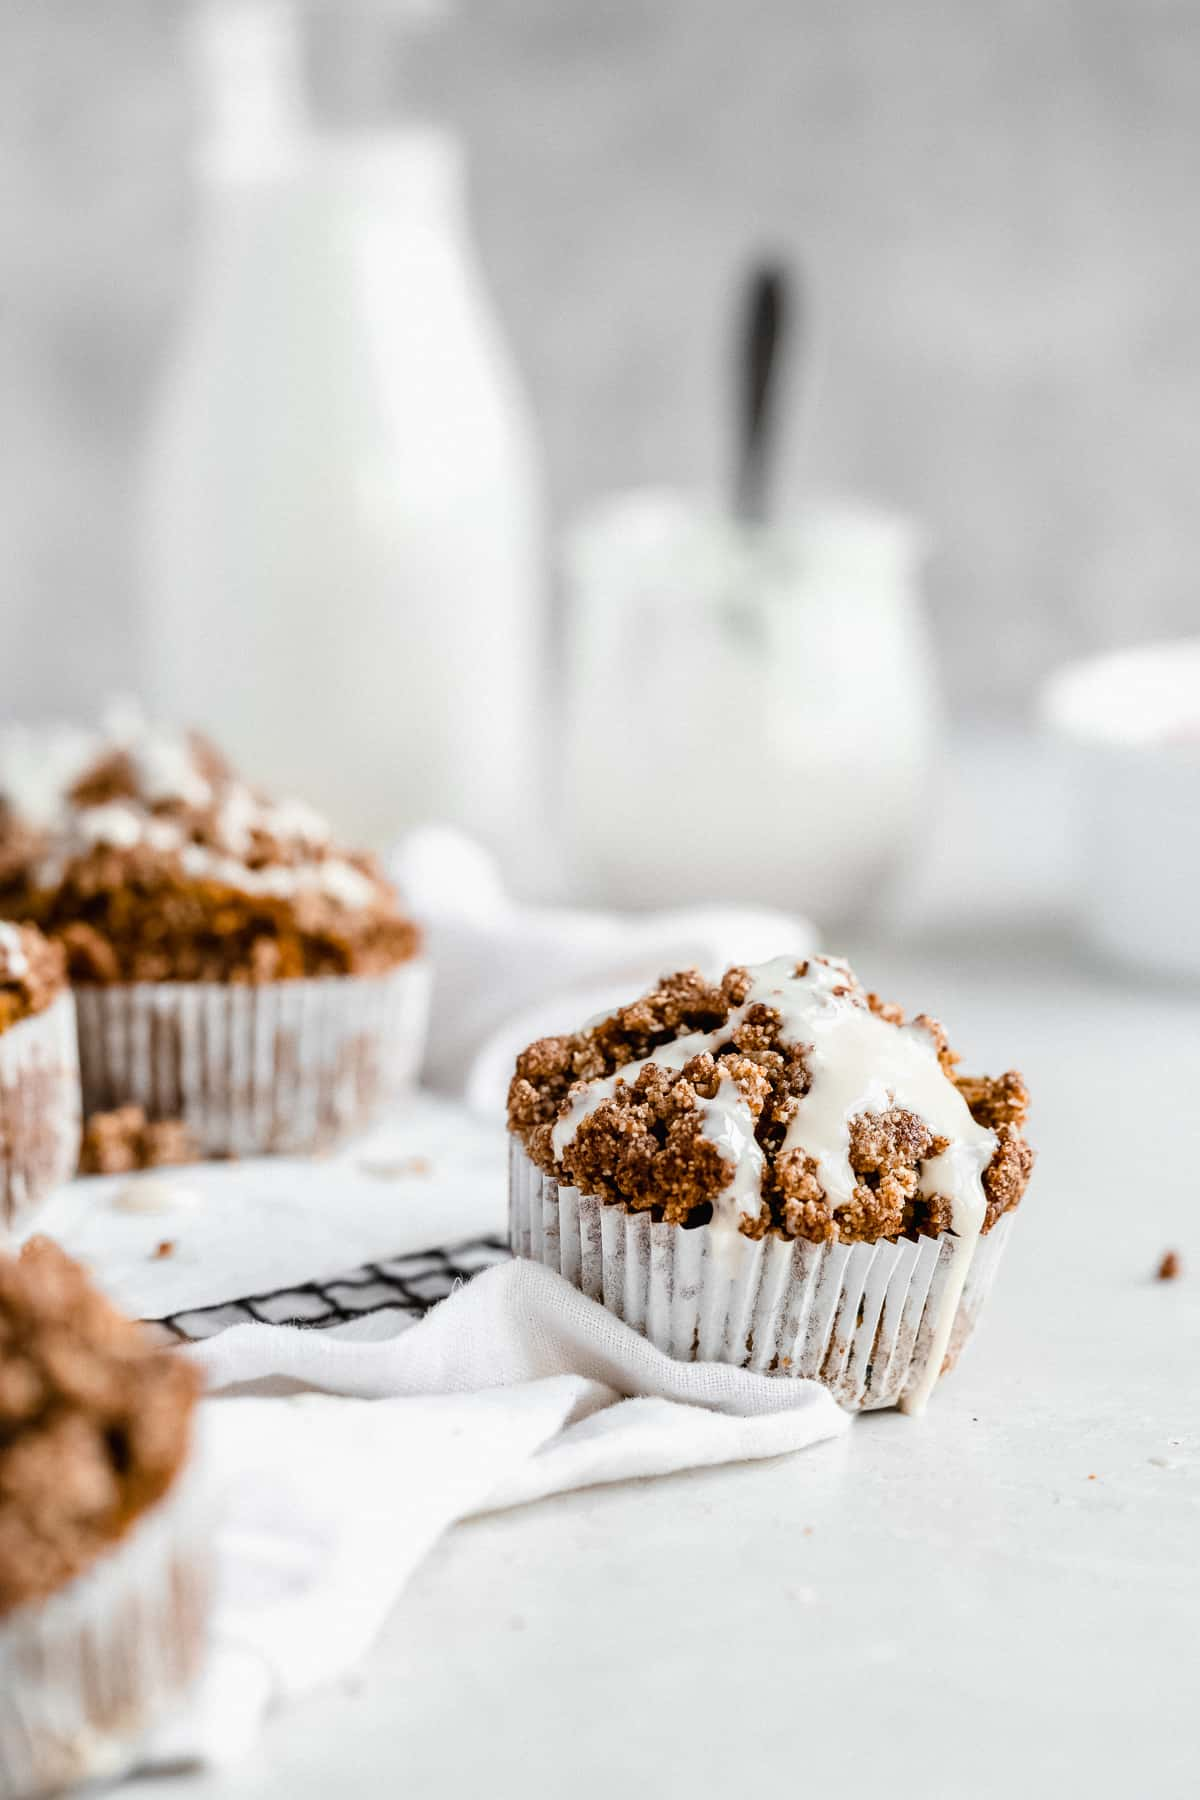 Side view photo of a single Gluten-free Zucchini Muffin with Sweet Maple Cream Cheese Glaze sitting on a cooling rack and white linen cloth.  Several other muffins can be seen in the background.